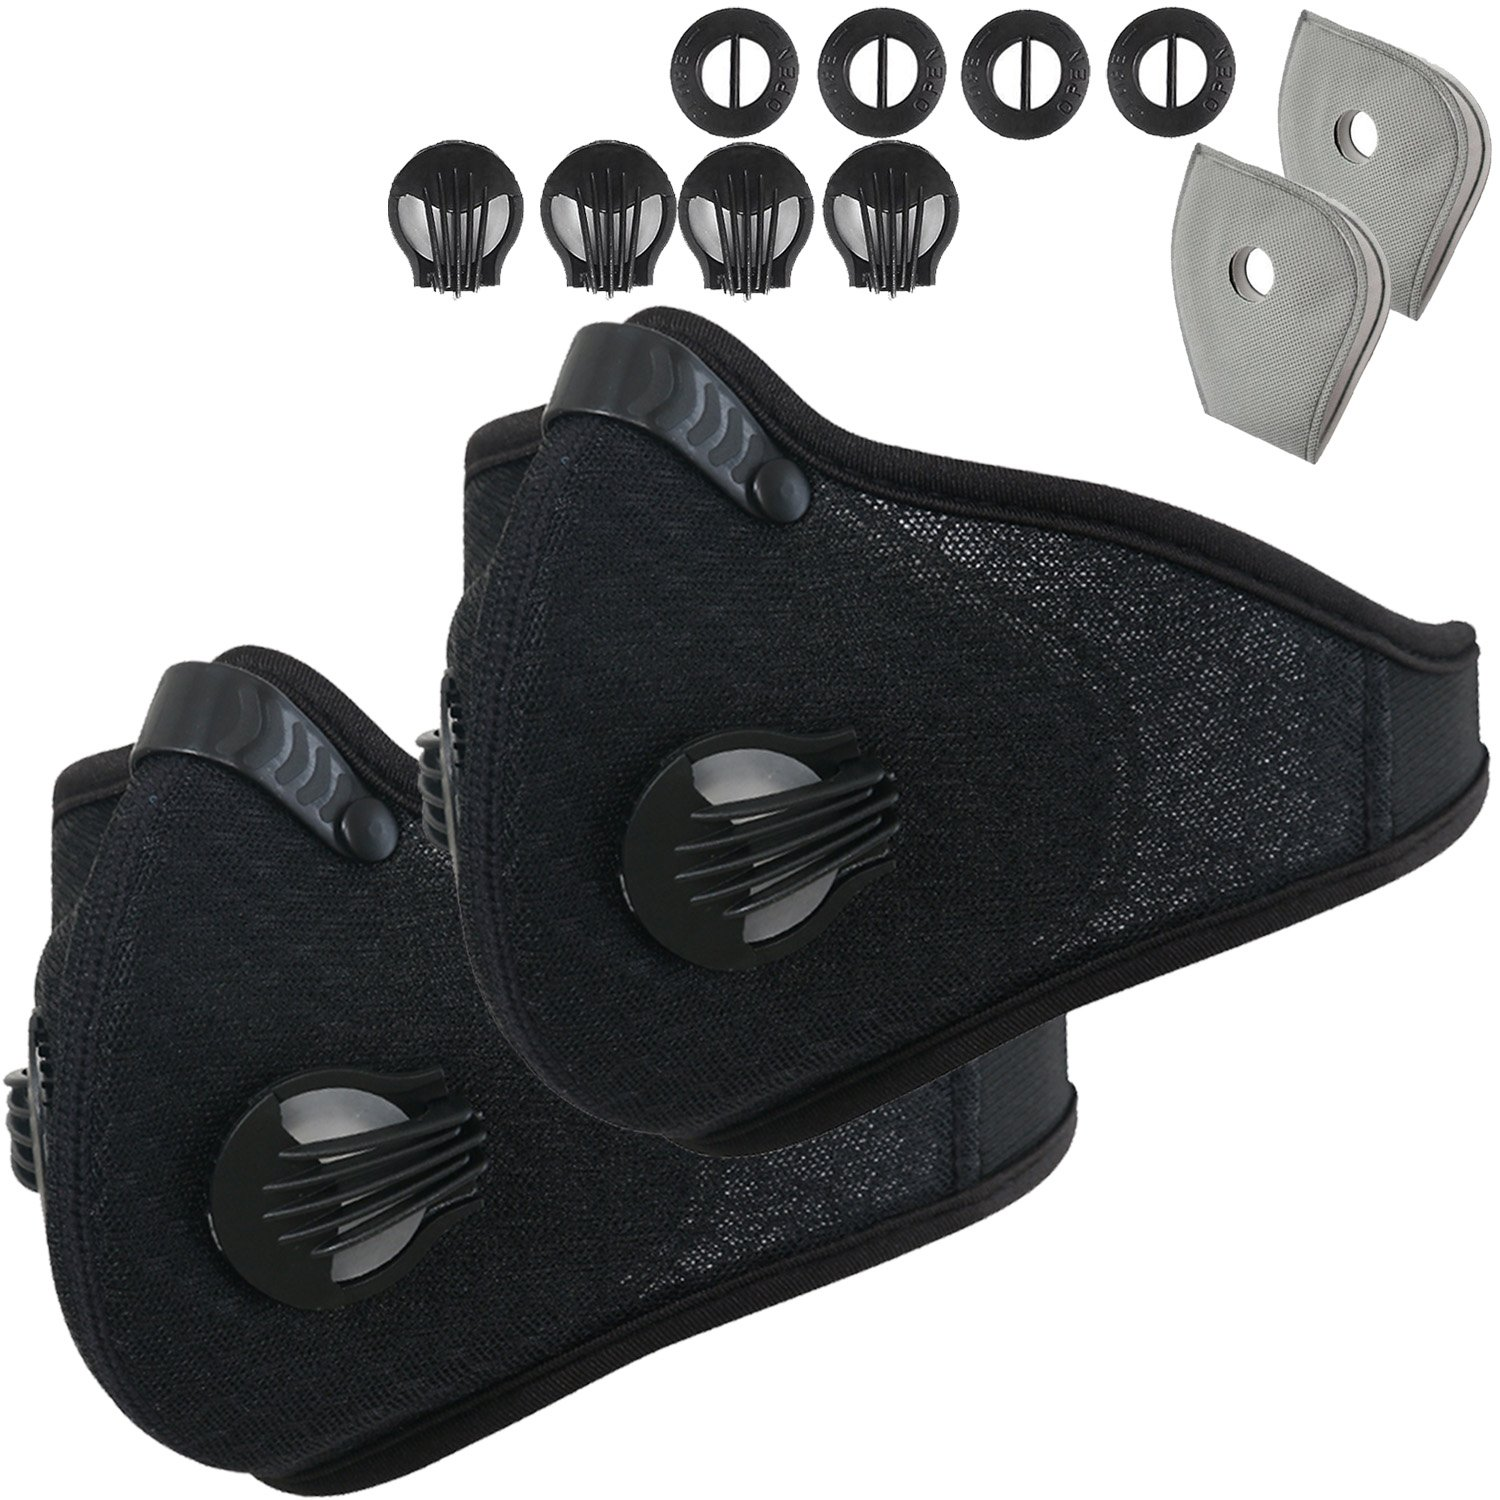 Dustproof Mask - Activated Carbon Dust Masks - with Extra Filter Cotton Sheet and Valves for Exhaust Gas, Anti Pollen Allergy, PM2.5, Running, Cycling, Outdoor Activities (2 Pack Black+Black, Type 1)